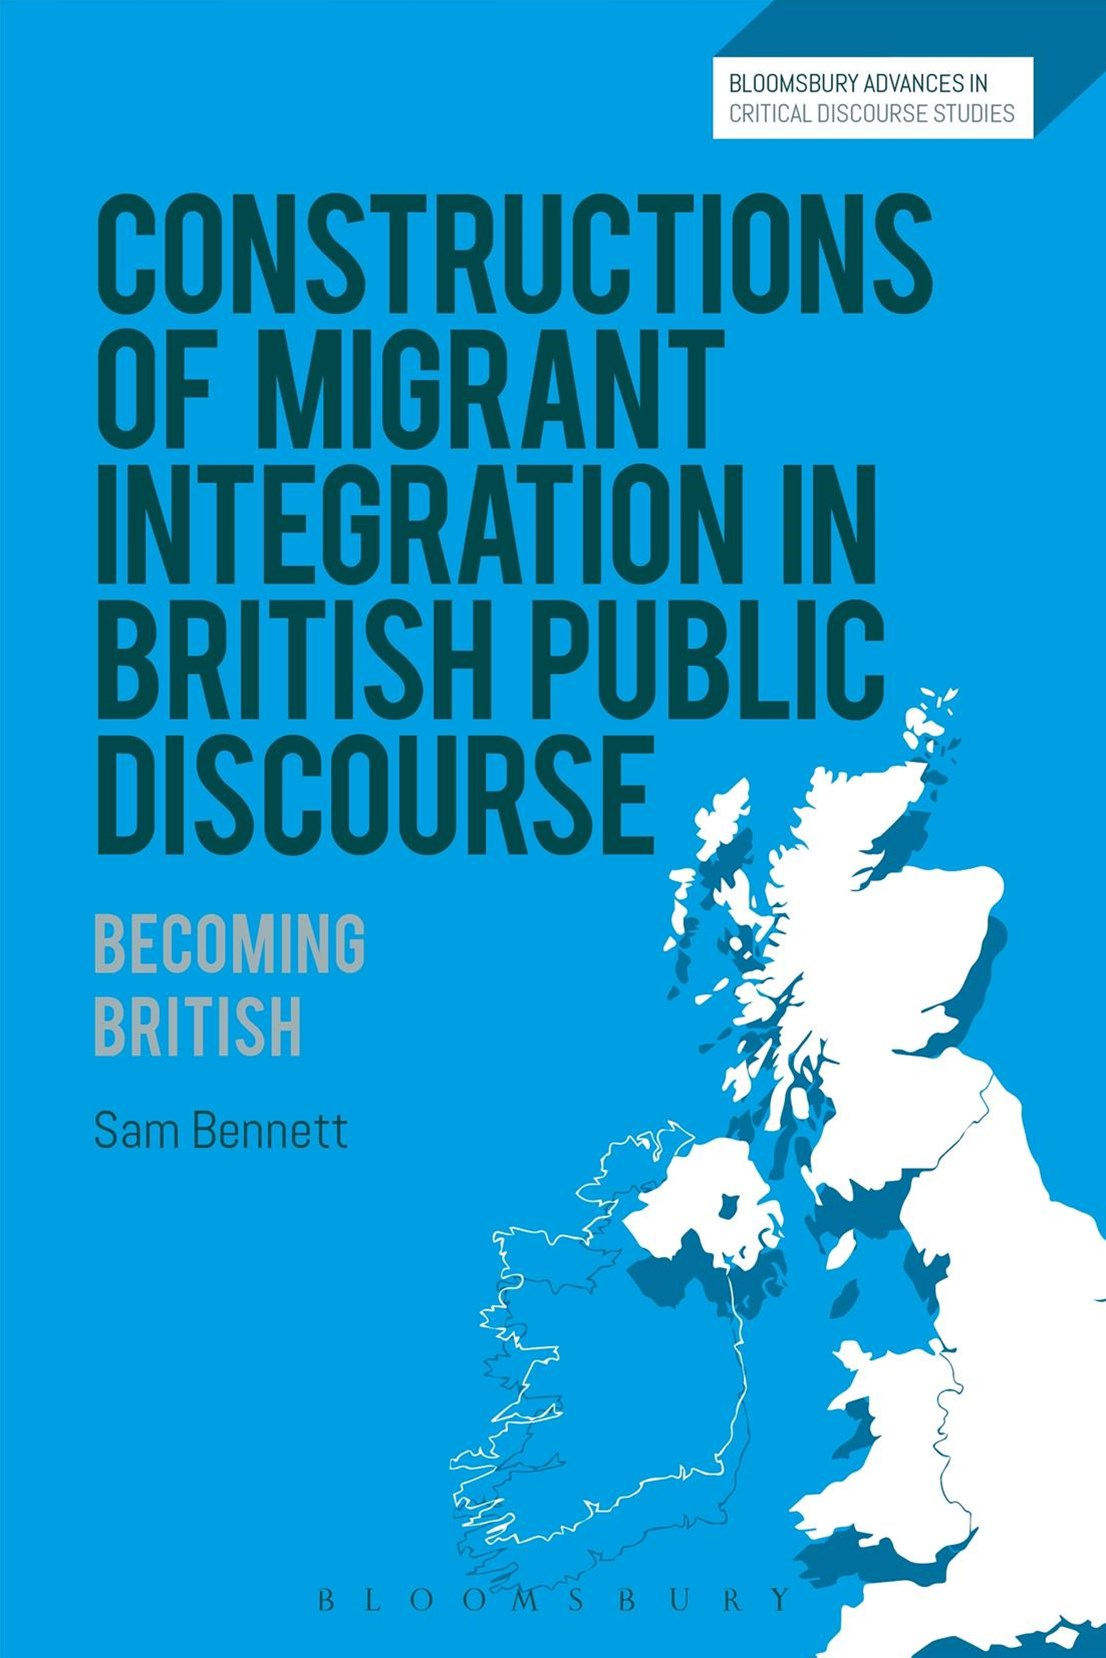 Constructions of Migrant Integration in British Public Discourse